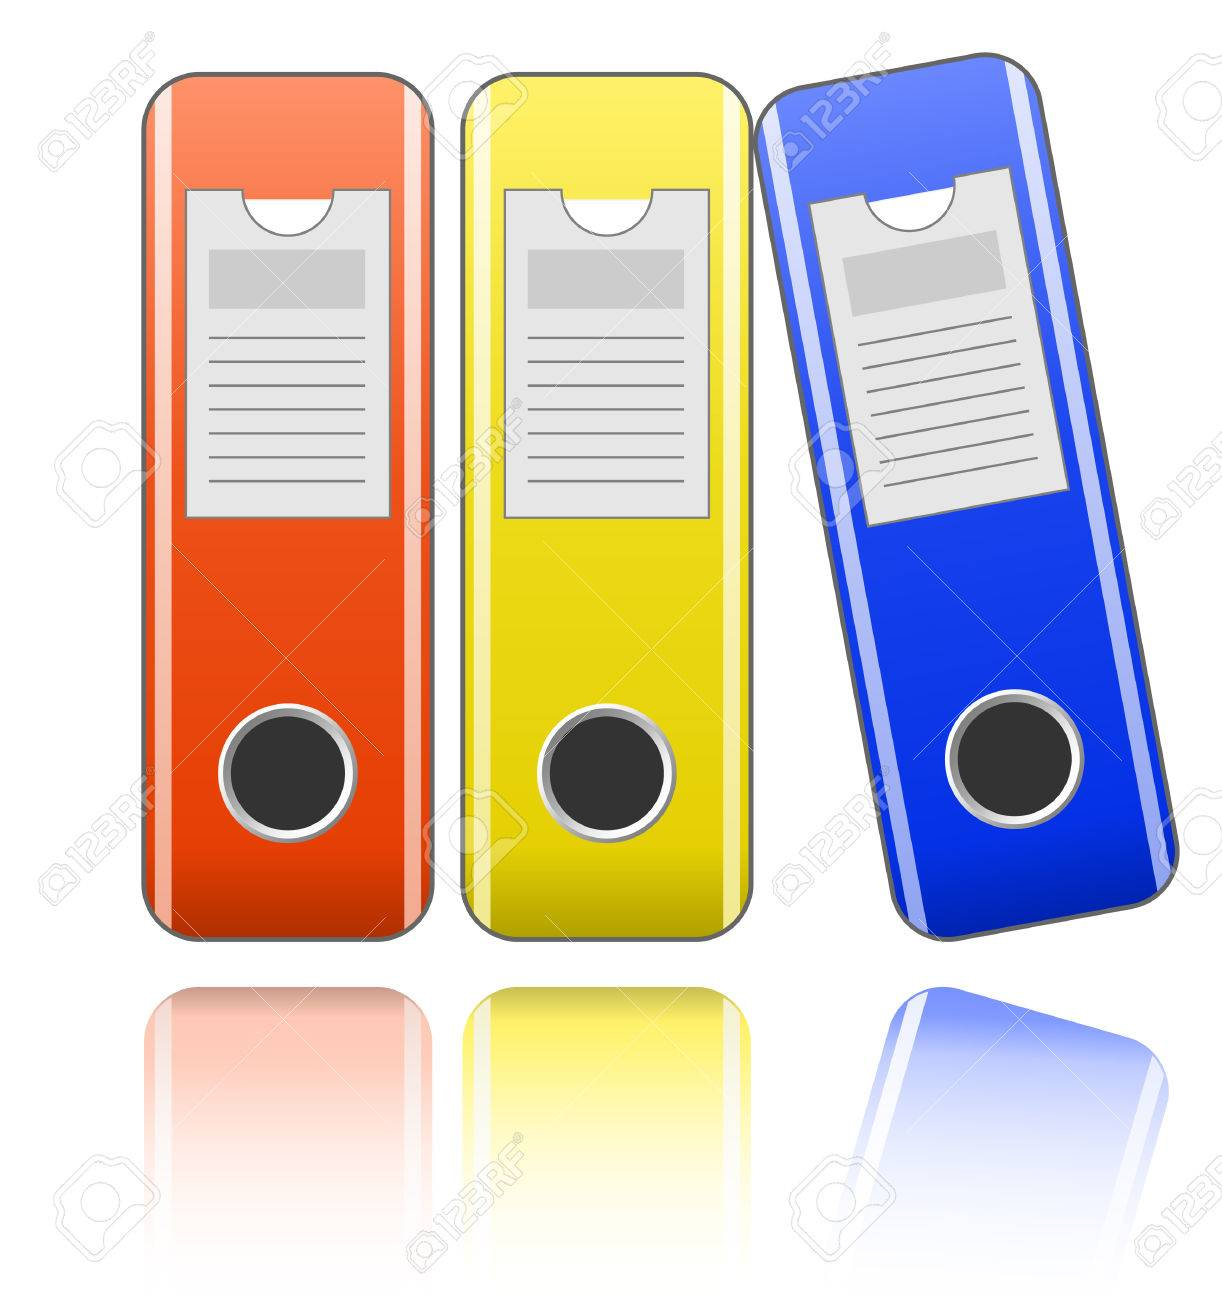 Folders For Office Documents Royalty Free Cliparts, Vectors, And ...